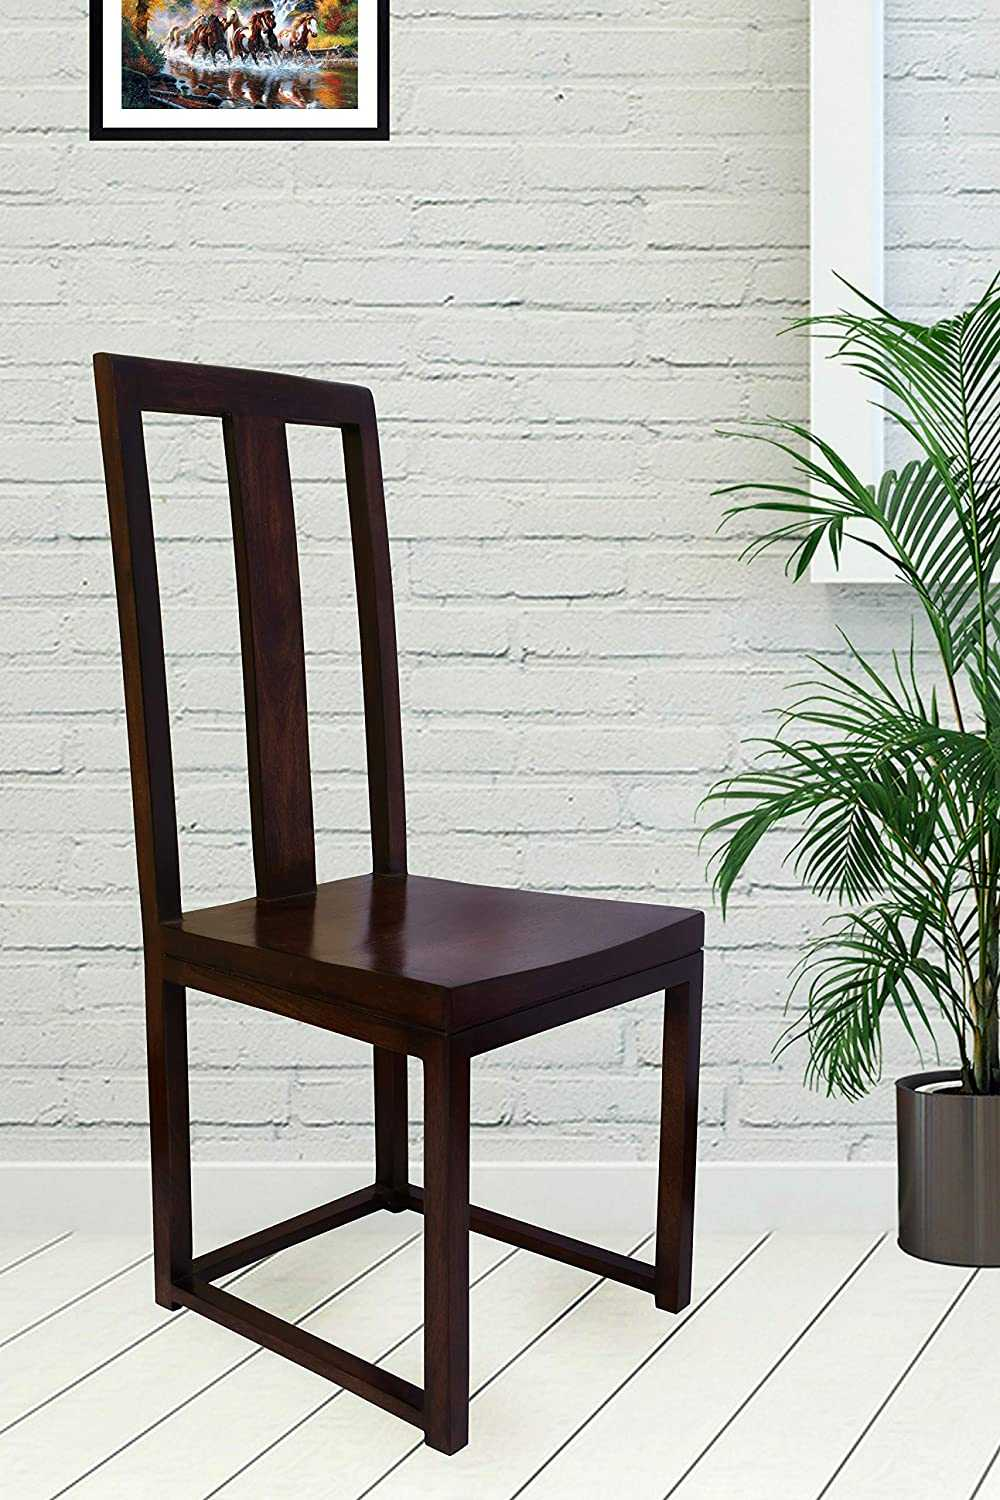 Ijeko  Mango Wood Dining Chairs for Home (dark brown)